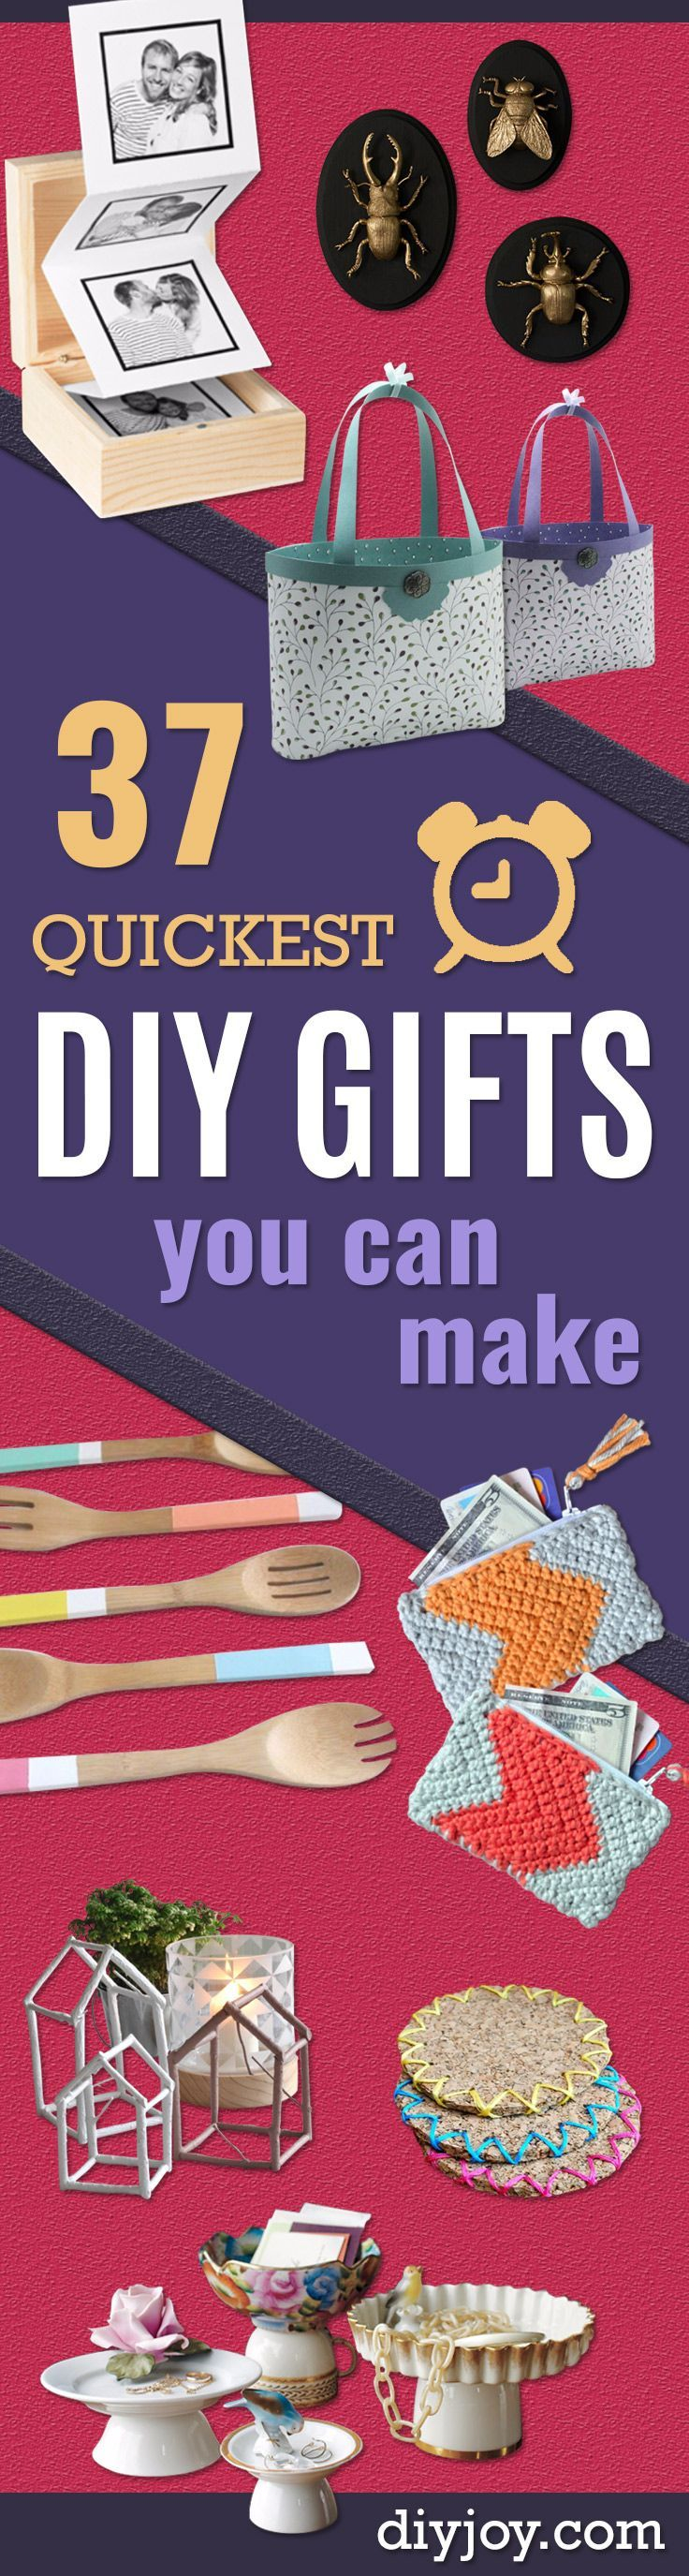 37 quickest diy gifts you can make kids girls dads and jar for Last minute diy birthday gifts for dad